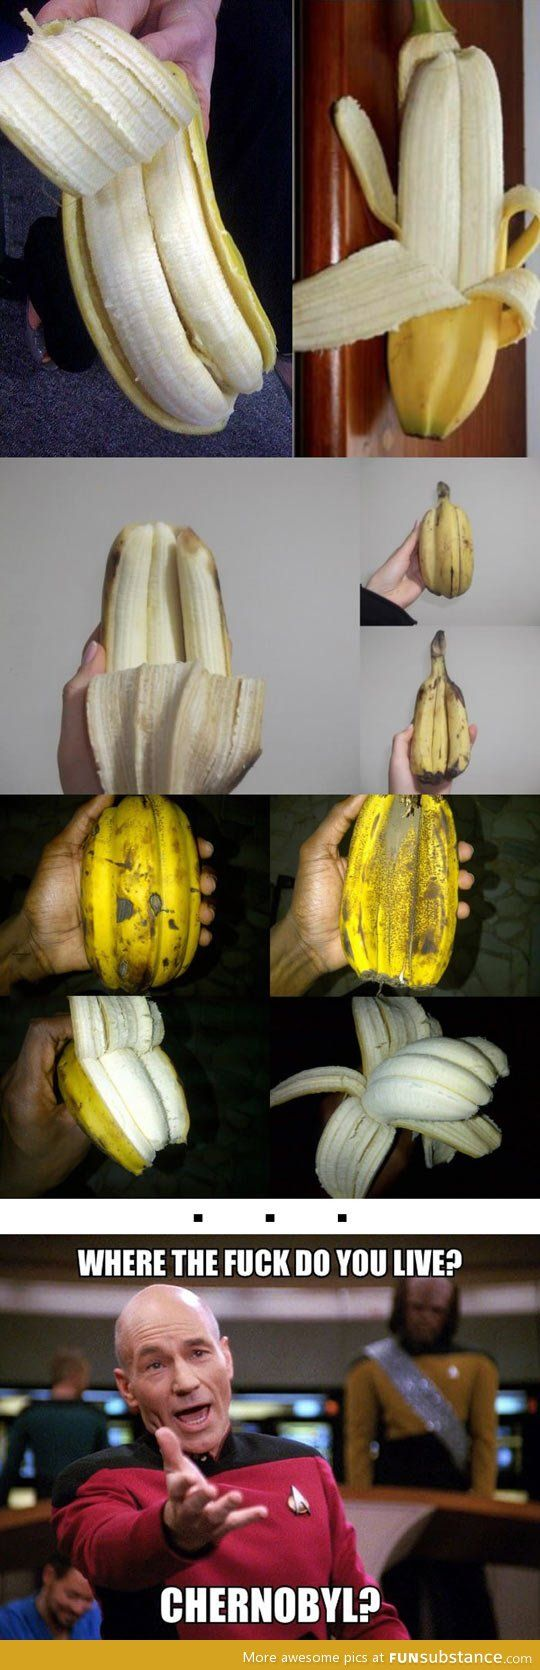 That's some serious banana mutations right there.